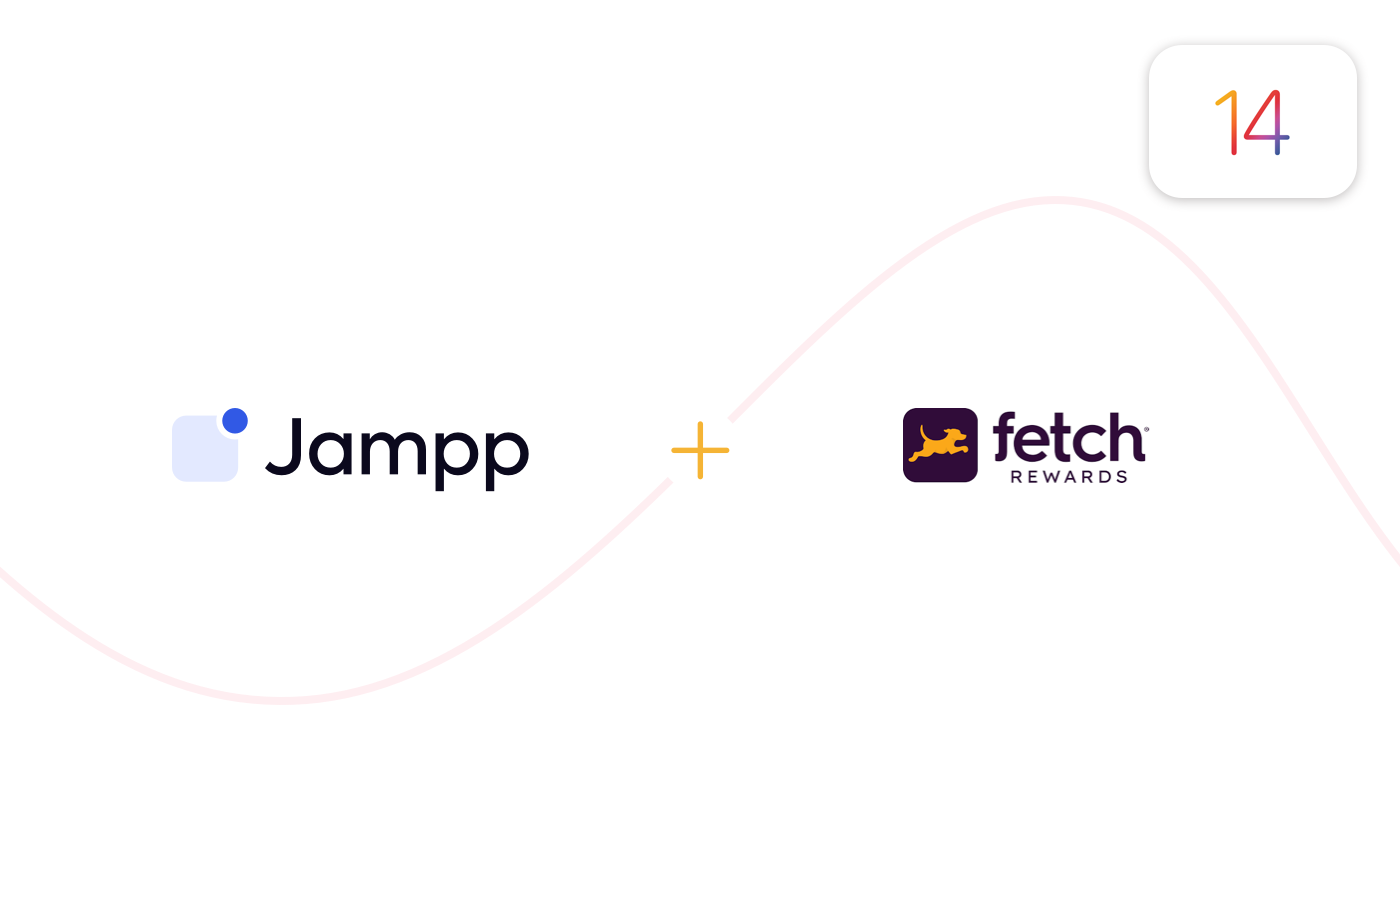 Fetch Rewards sees success with SKAdNetwork campaign